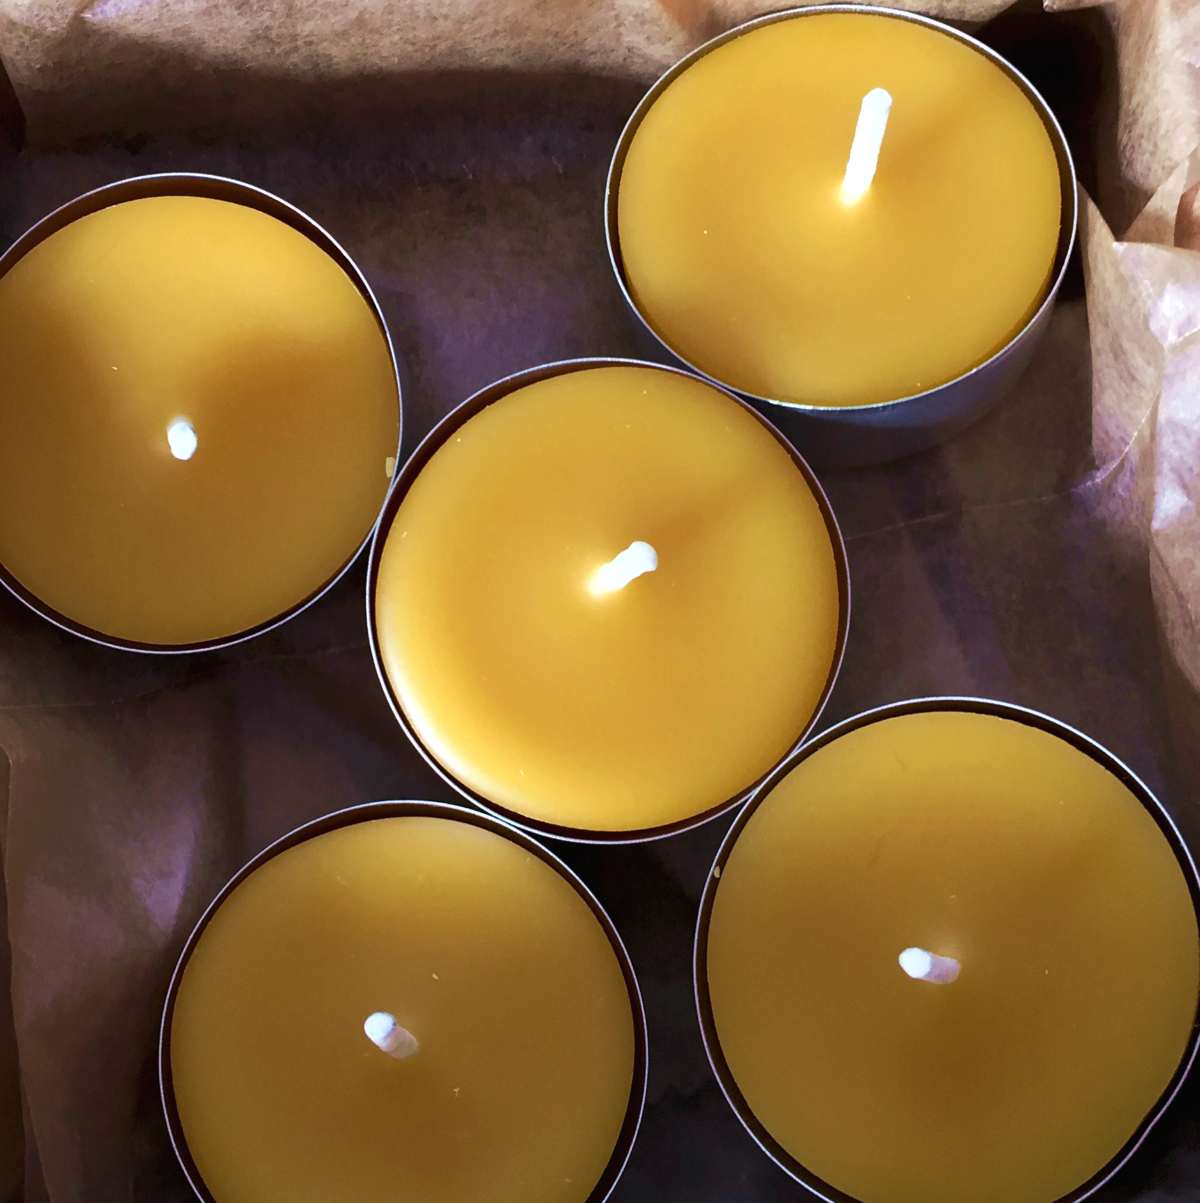 Pour your own beeswax candles: another great gift for the holidays